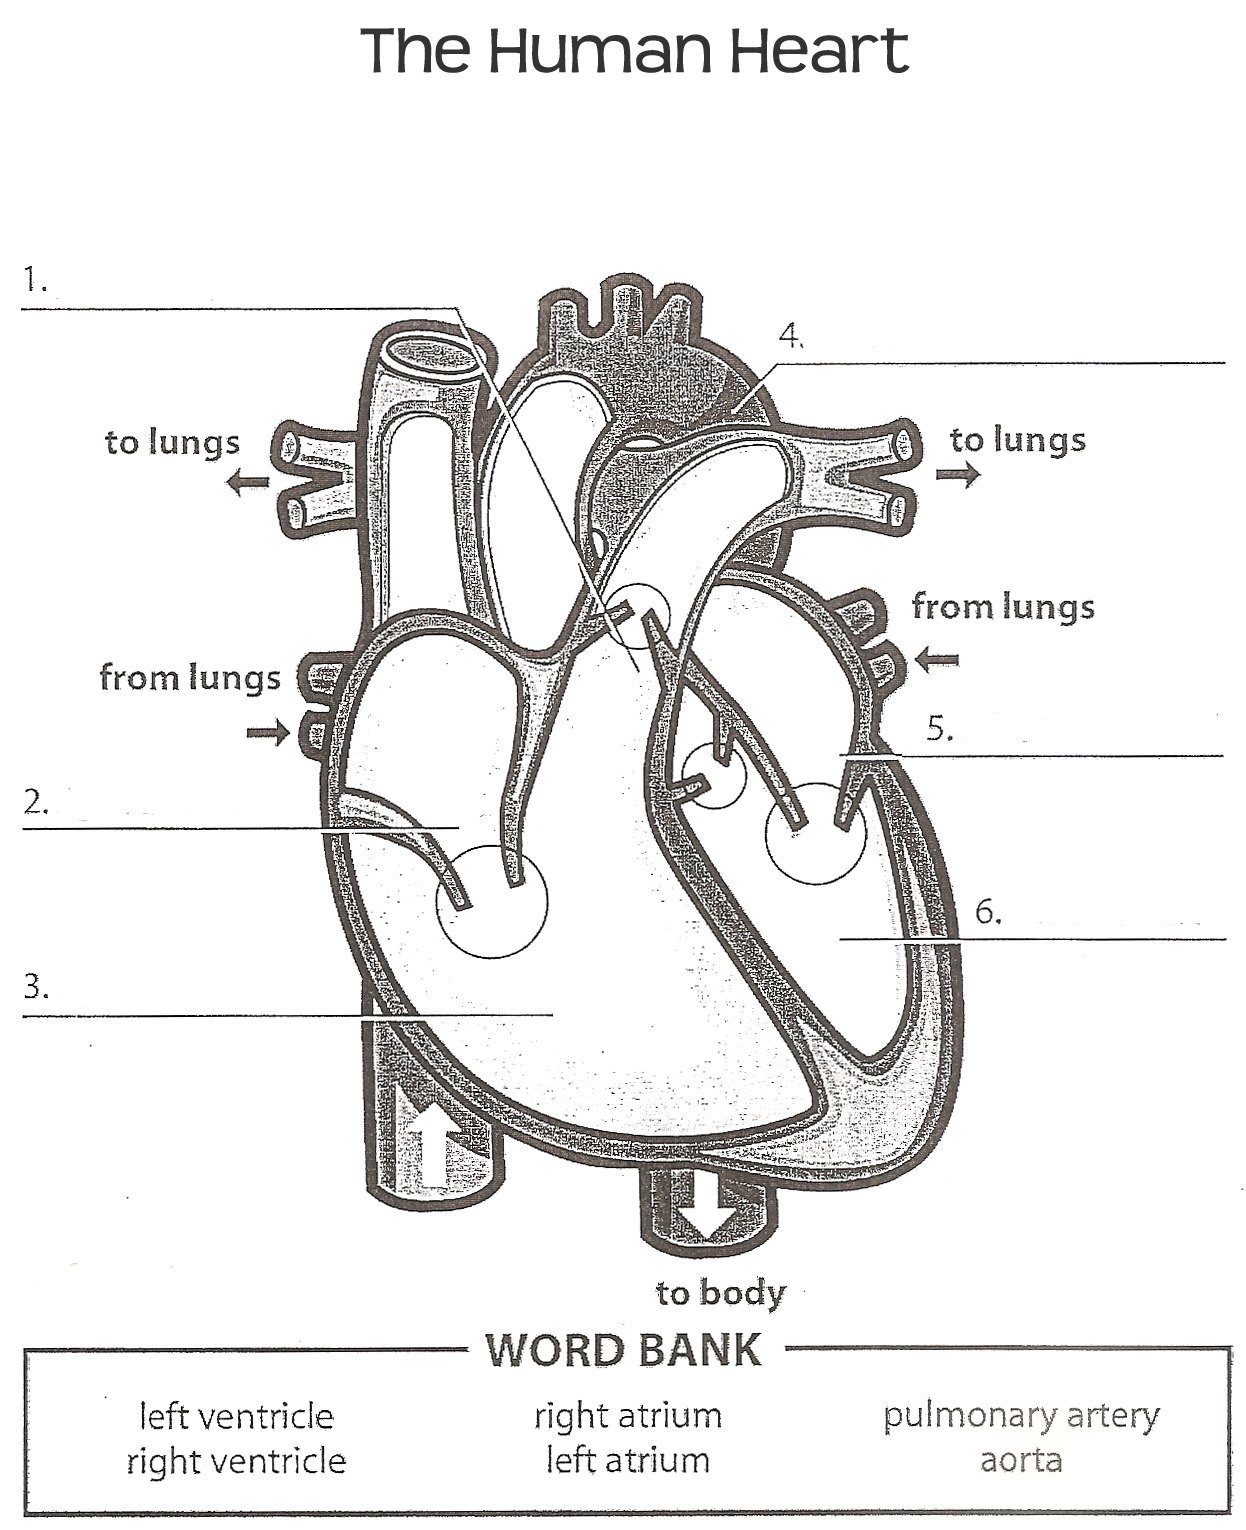 human heart worksheet | Human heart diagram, Heart diagram ...